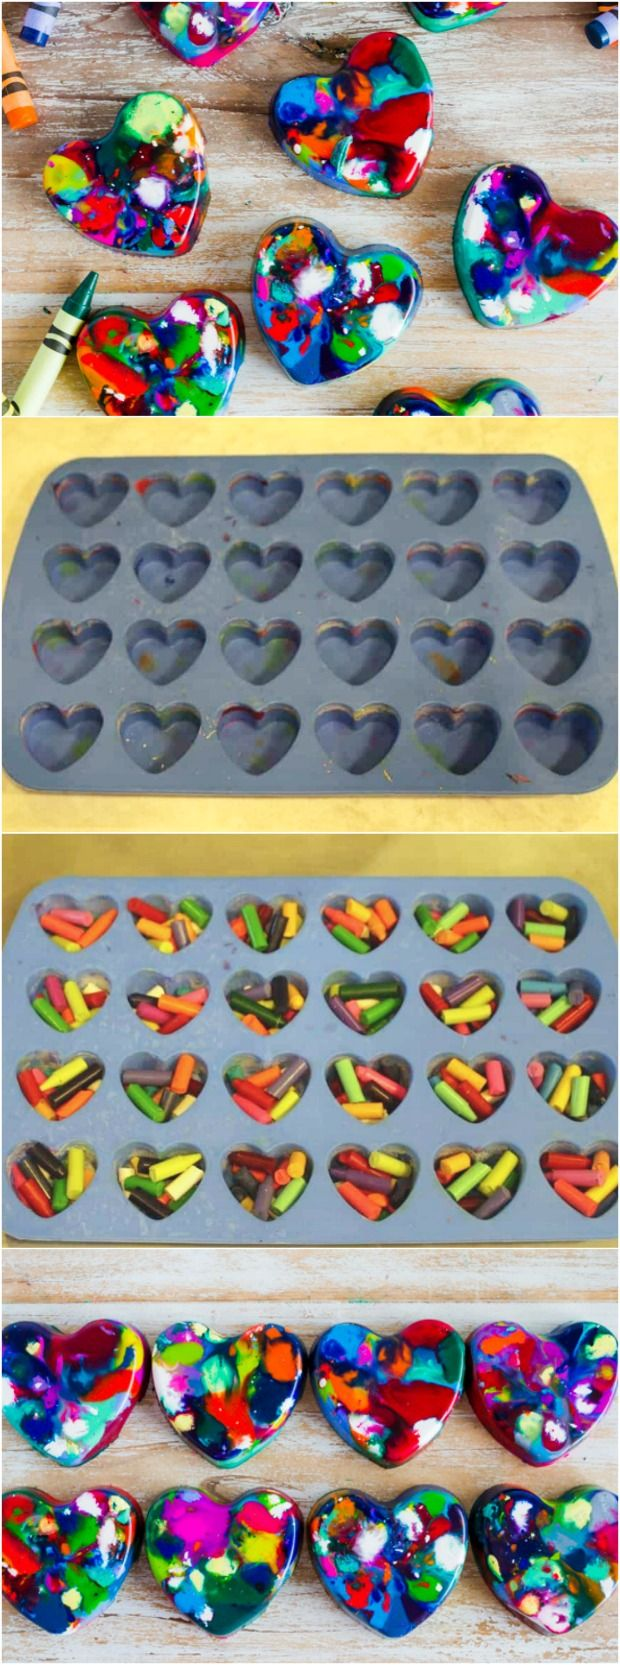 Are you looking for an easy DIY Valentine class gift Something non-candy, no sugar, peanut free and all of that...These Valentine's Heart Shaped Crayons will be a classroom party favorite! #diy #hearts #valentine #noncandy #crayons #crafts